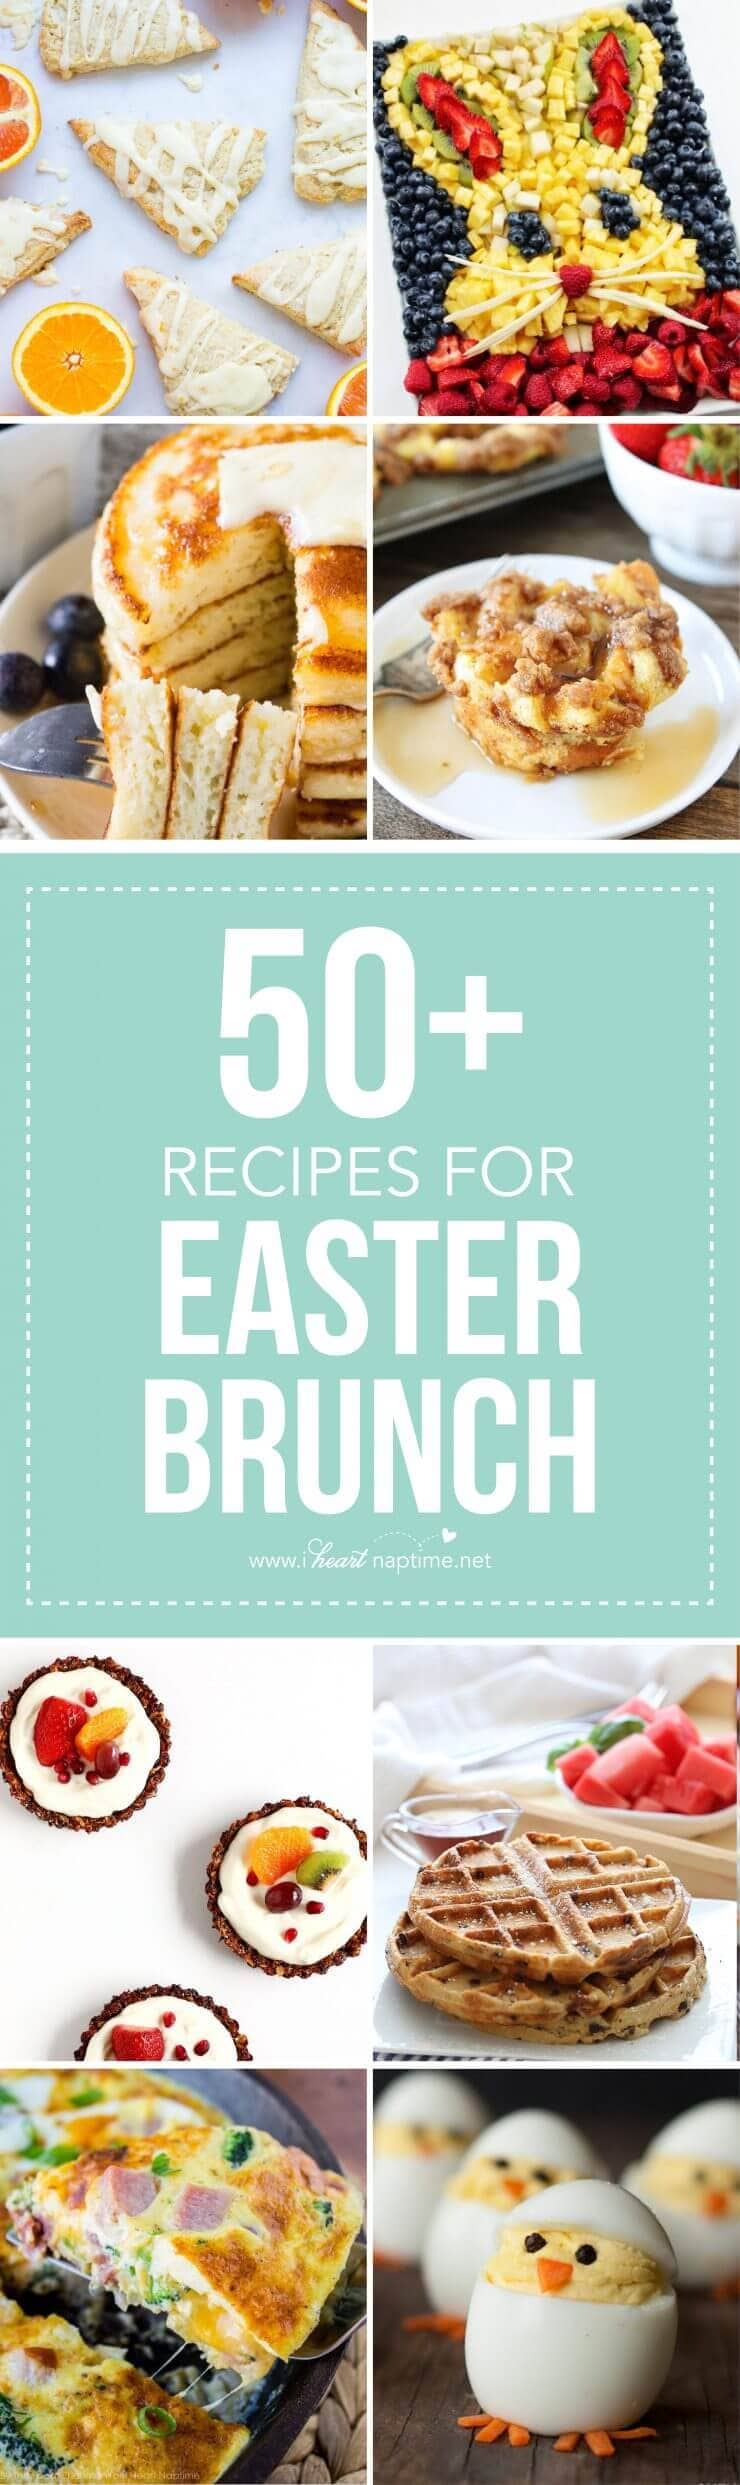 Top 50 Easter Brunch Recipes that will please every guest on your list...delicious recipes for the Easter holiday, the perfect occasion to enjoy your family and welcome spring with a delicious brunch.